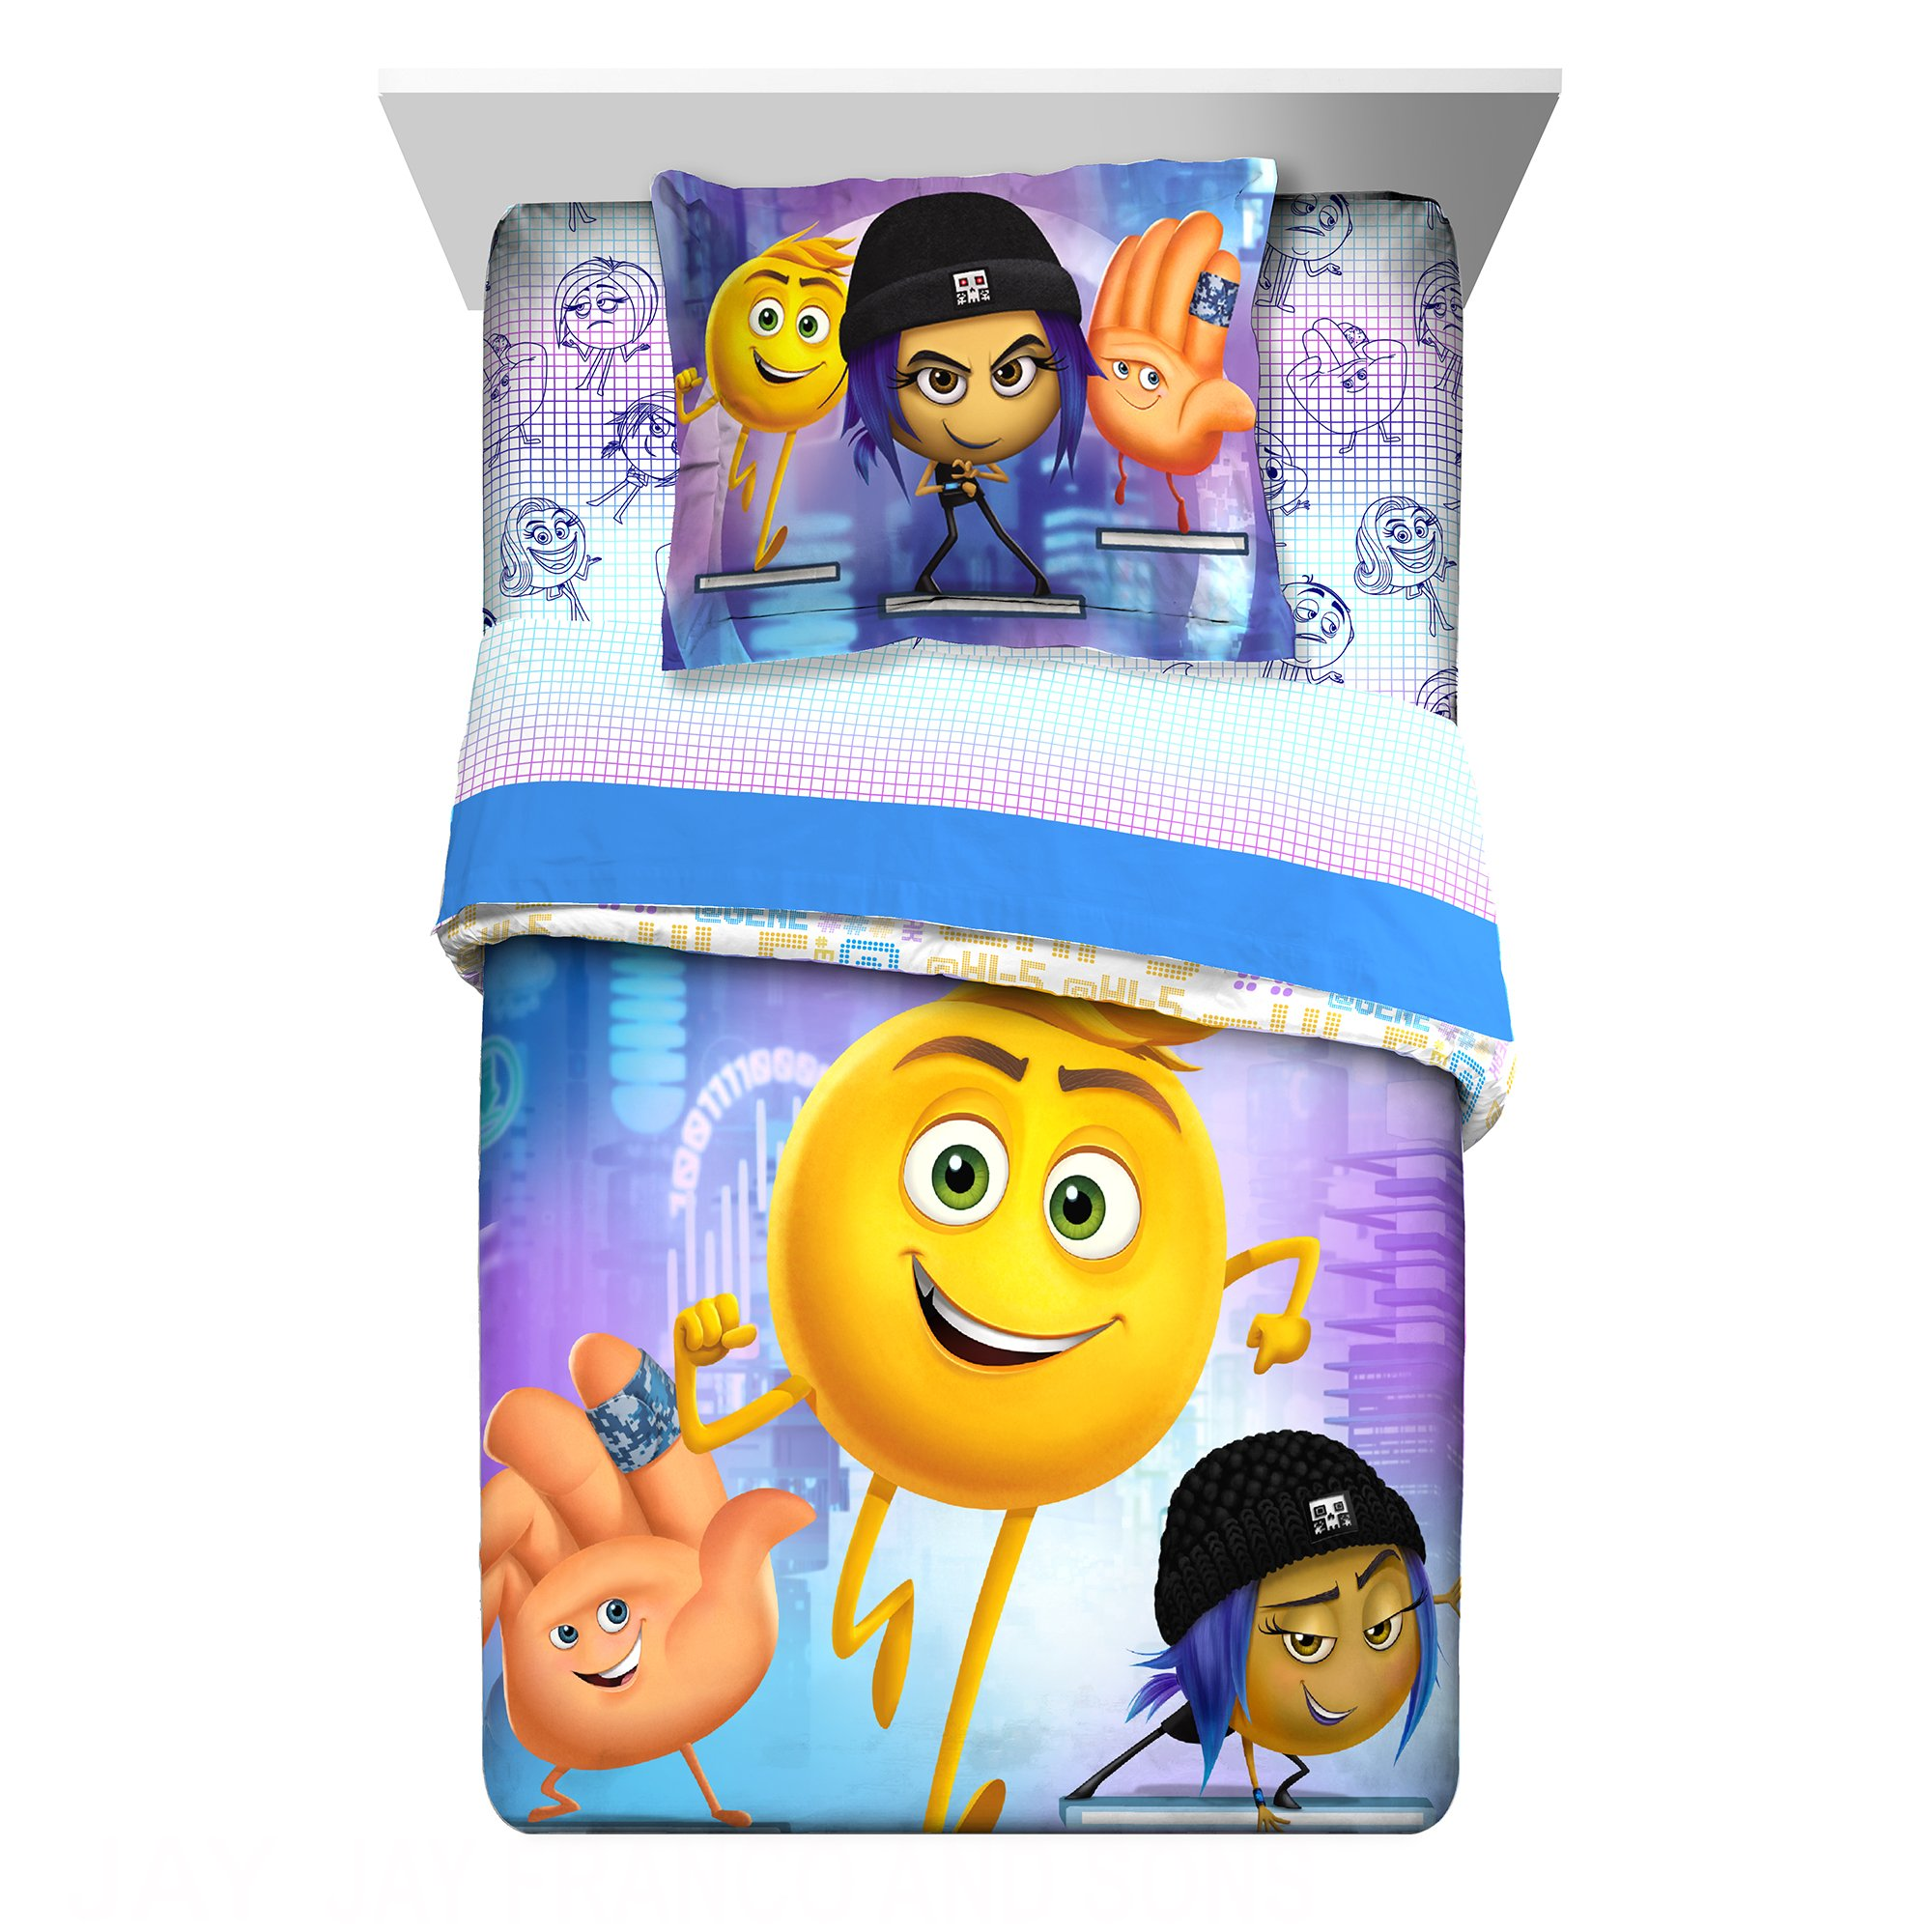 2 Piece Kids White Purple Blue Emoji Movie Comforter Twin/Full Set, Gene Addie Emoticon Bedding Hi-5 Face Icons Characters Funny Humor Hashtags Children, Polyester